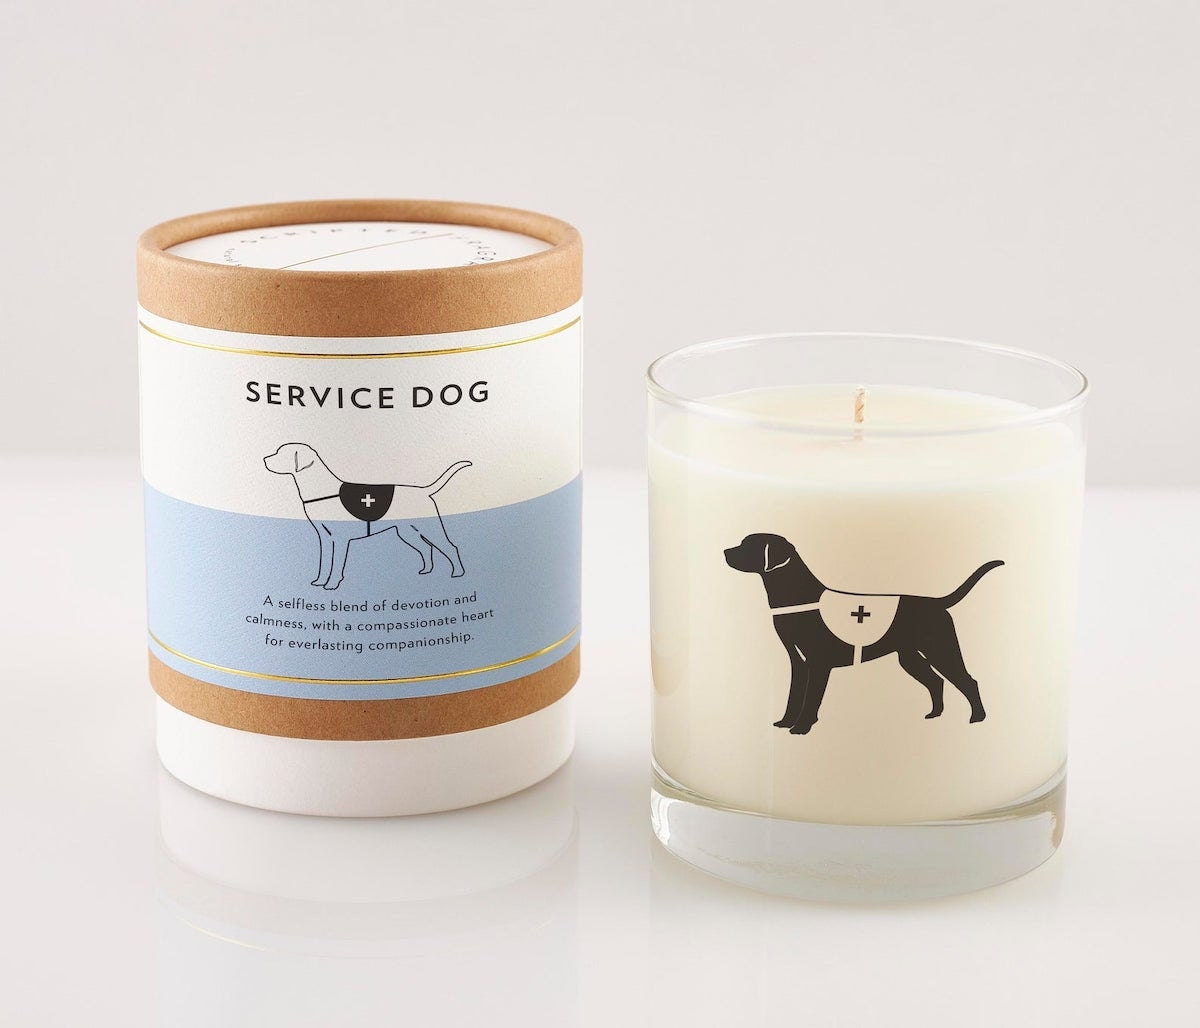 Service Dog soy candle from Scripted Fragrance on Etsy